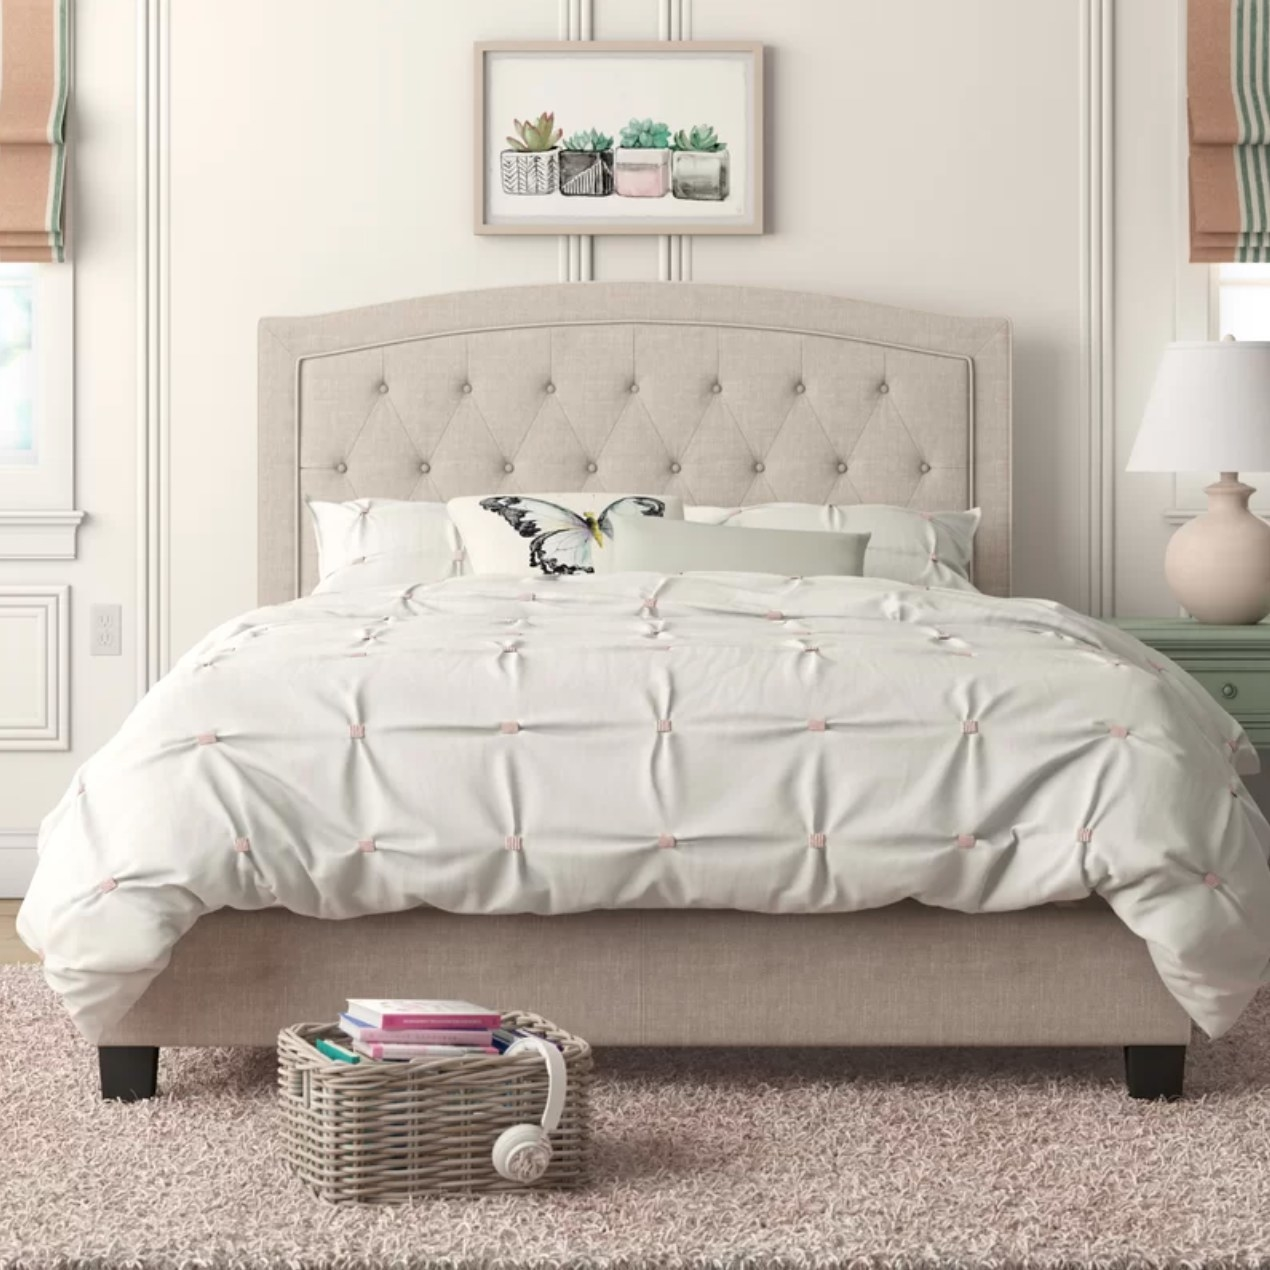 The beige upholstered bed with white linens and pillows